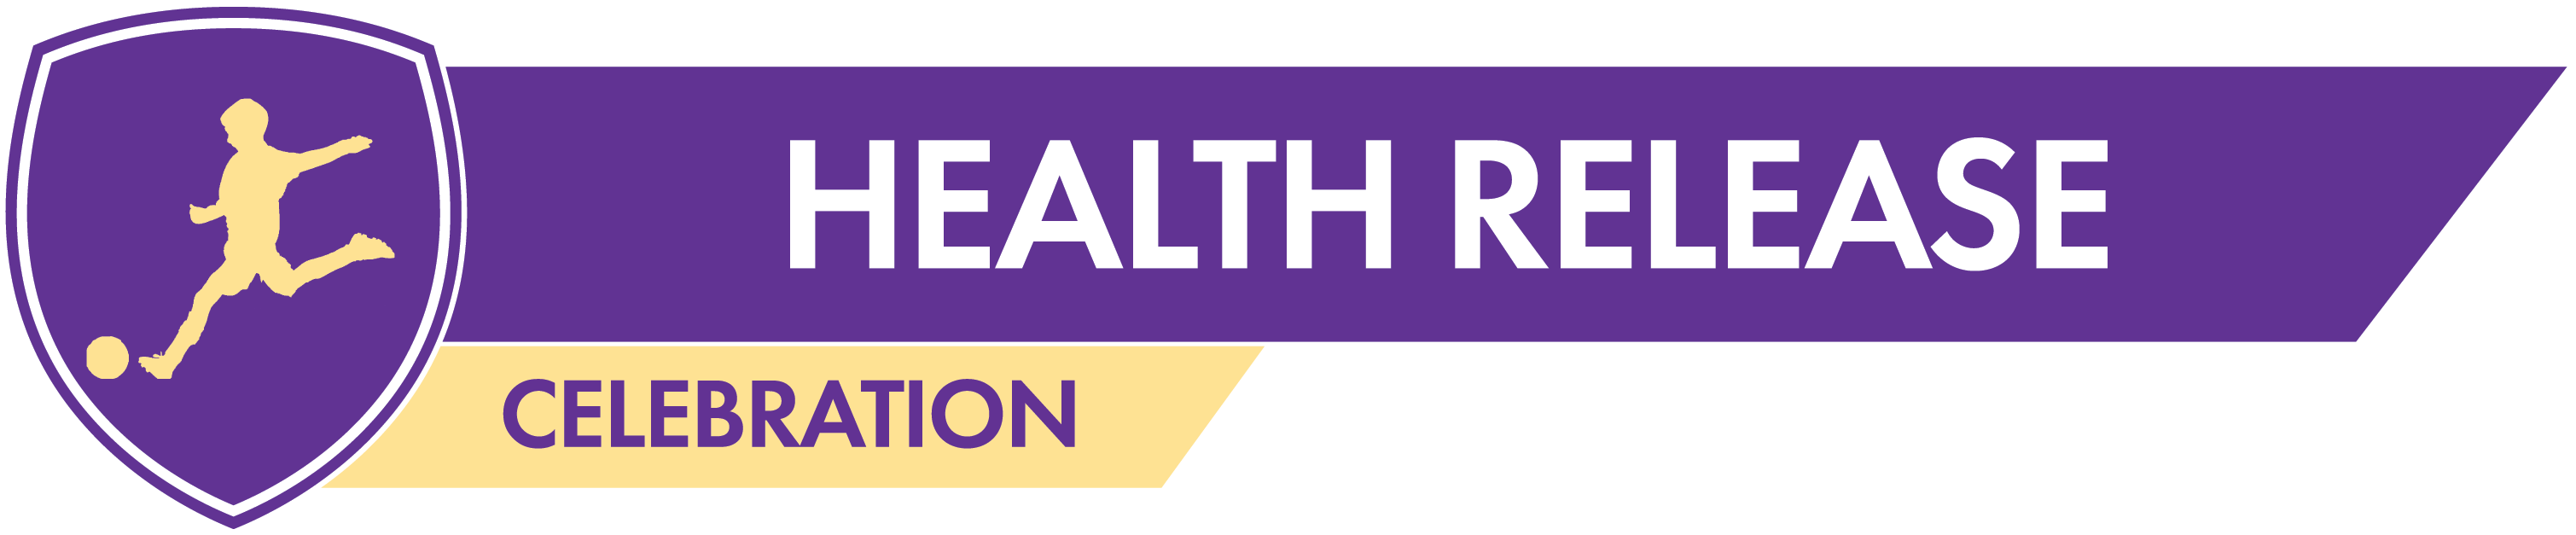 health_waiver_title_20